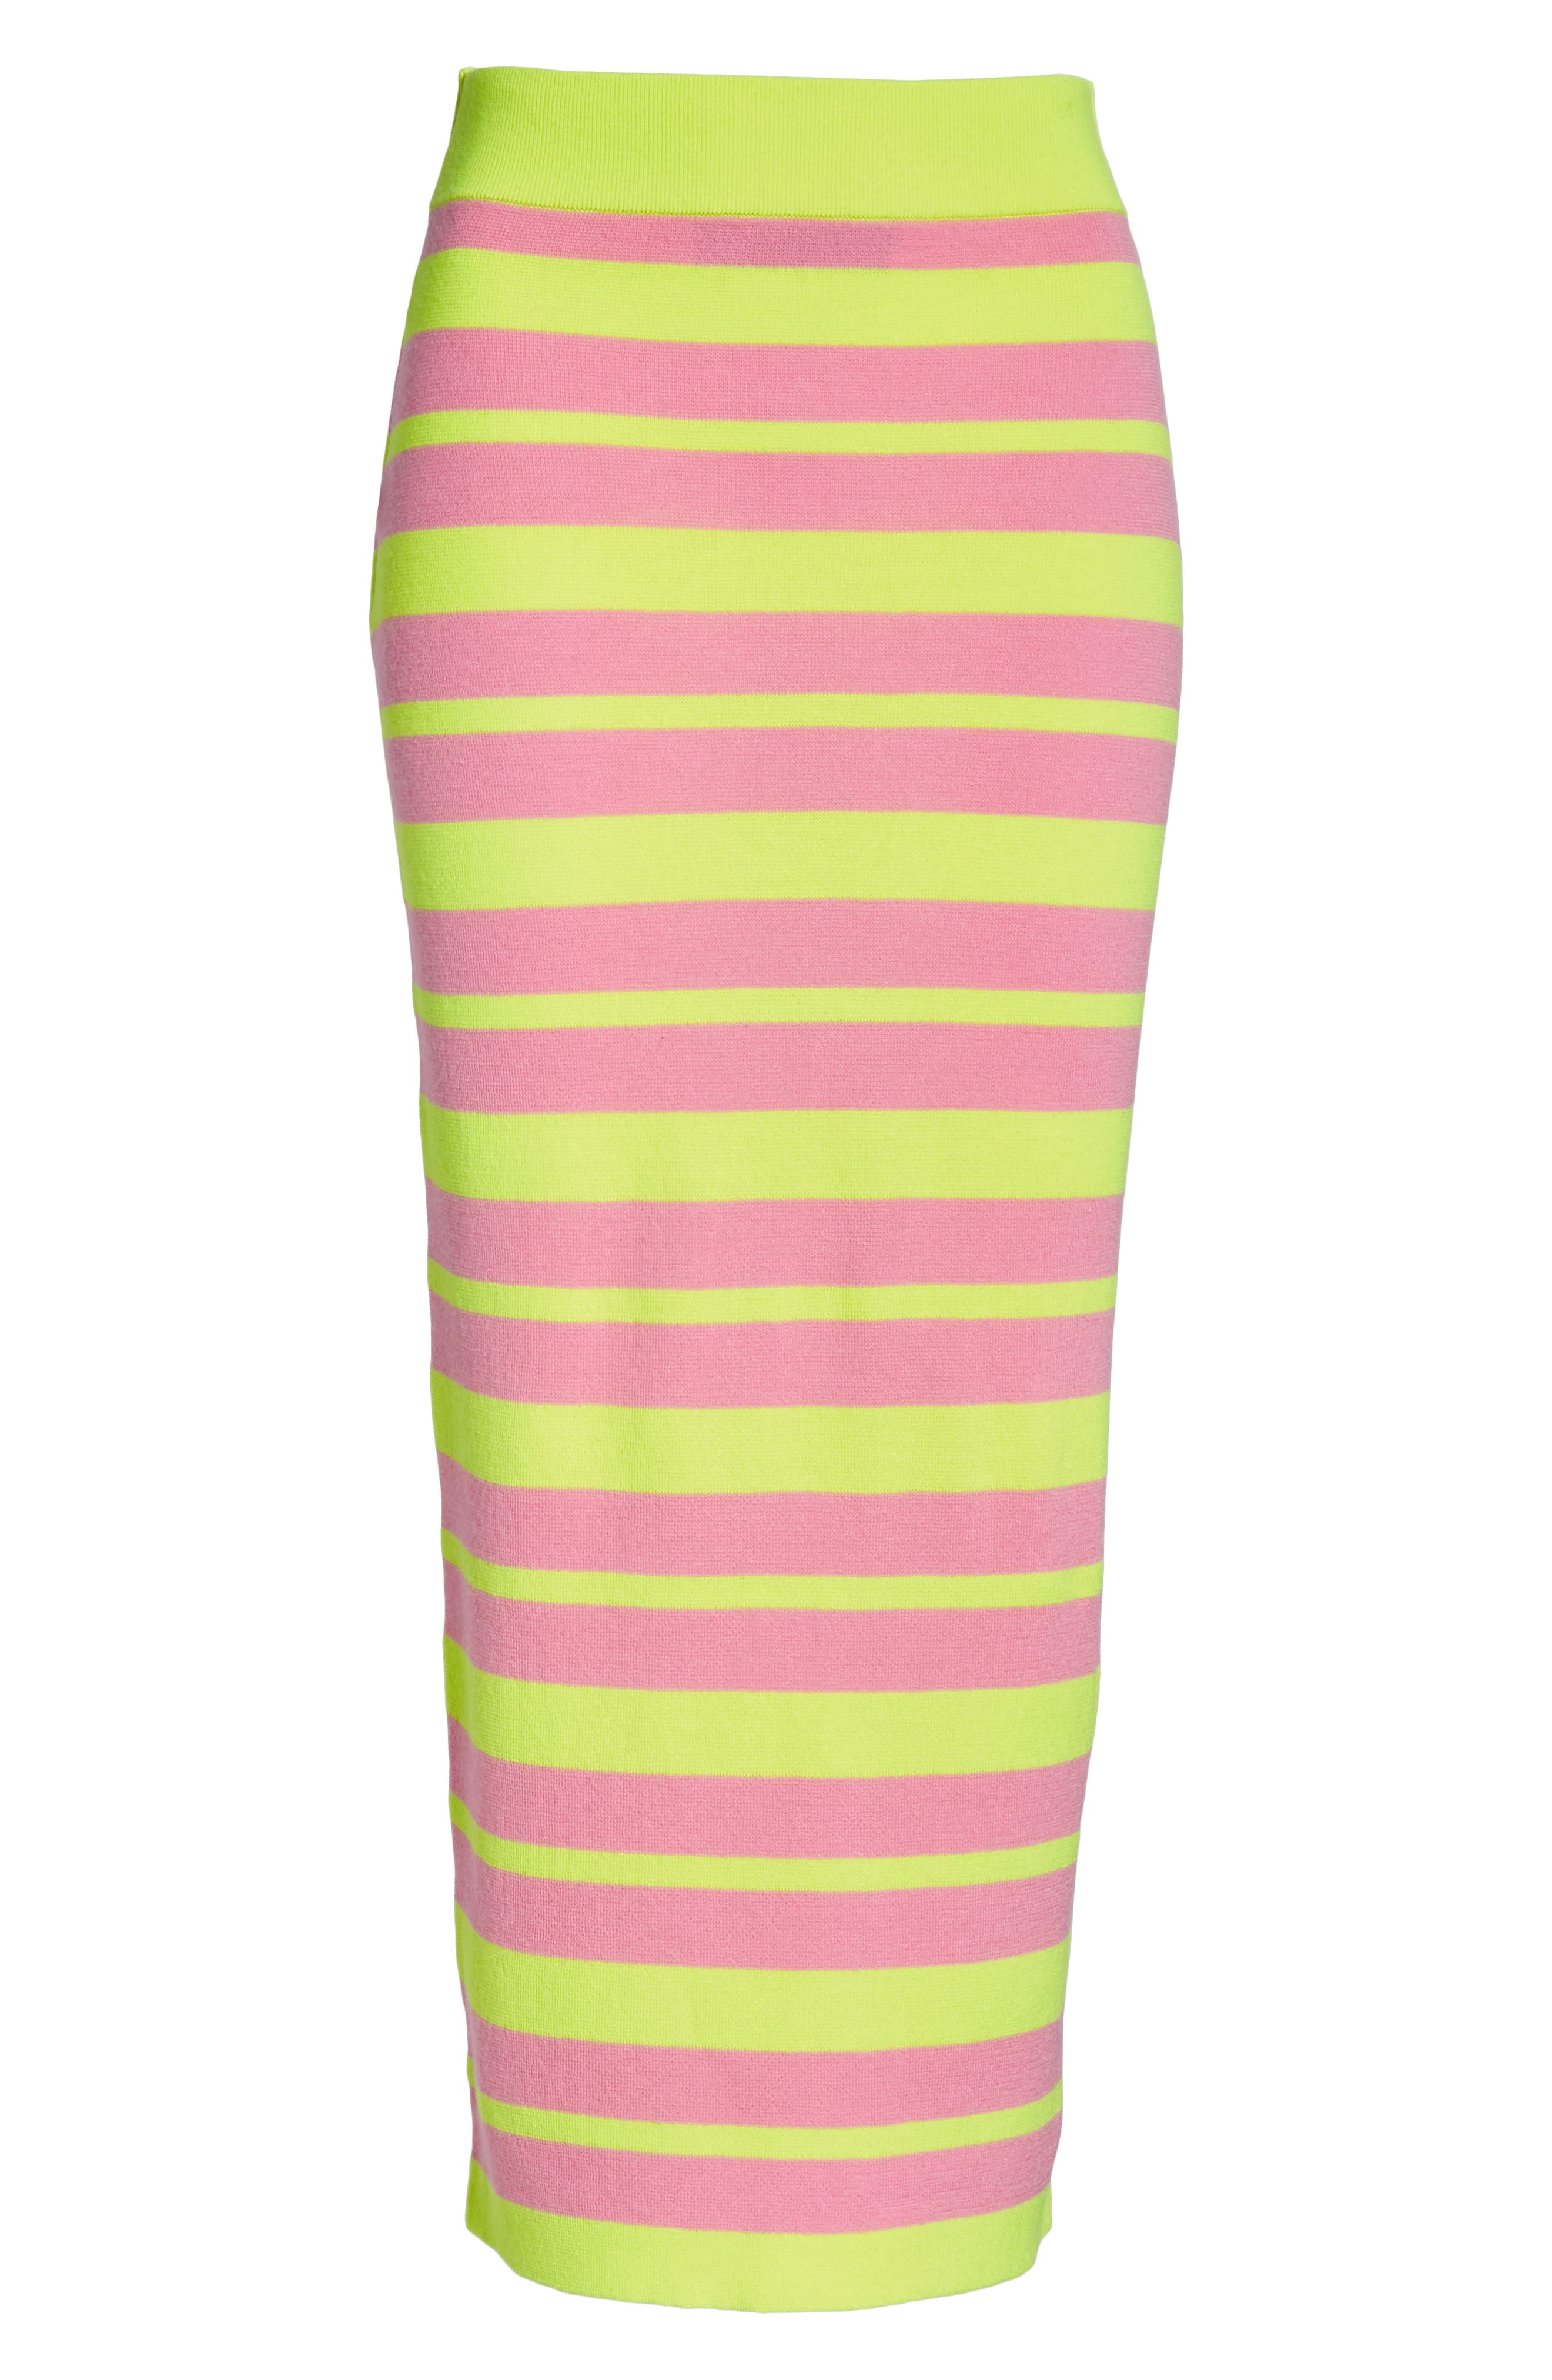 Stripe Knit Maxi Skirt,                             Alternate thumbnail 6, color,                             LIME AND PINK COMBO